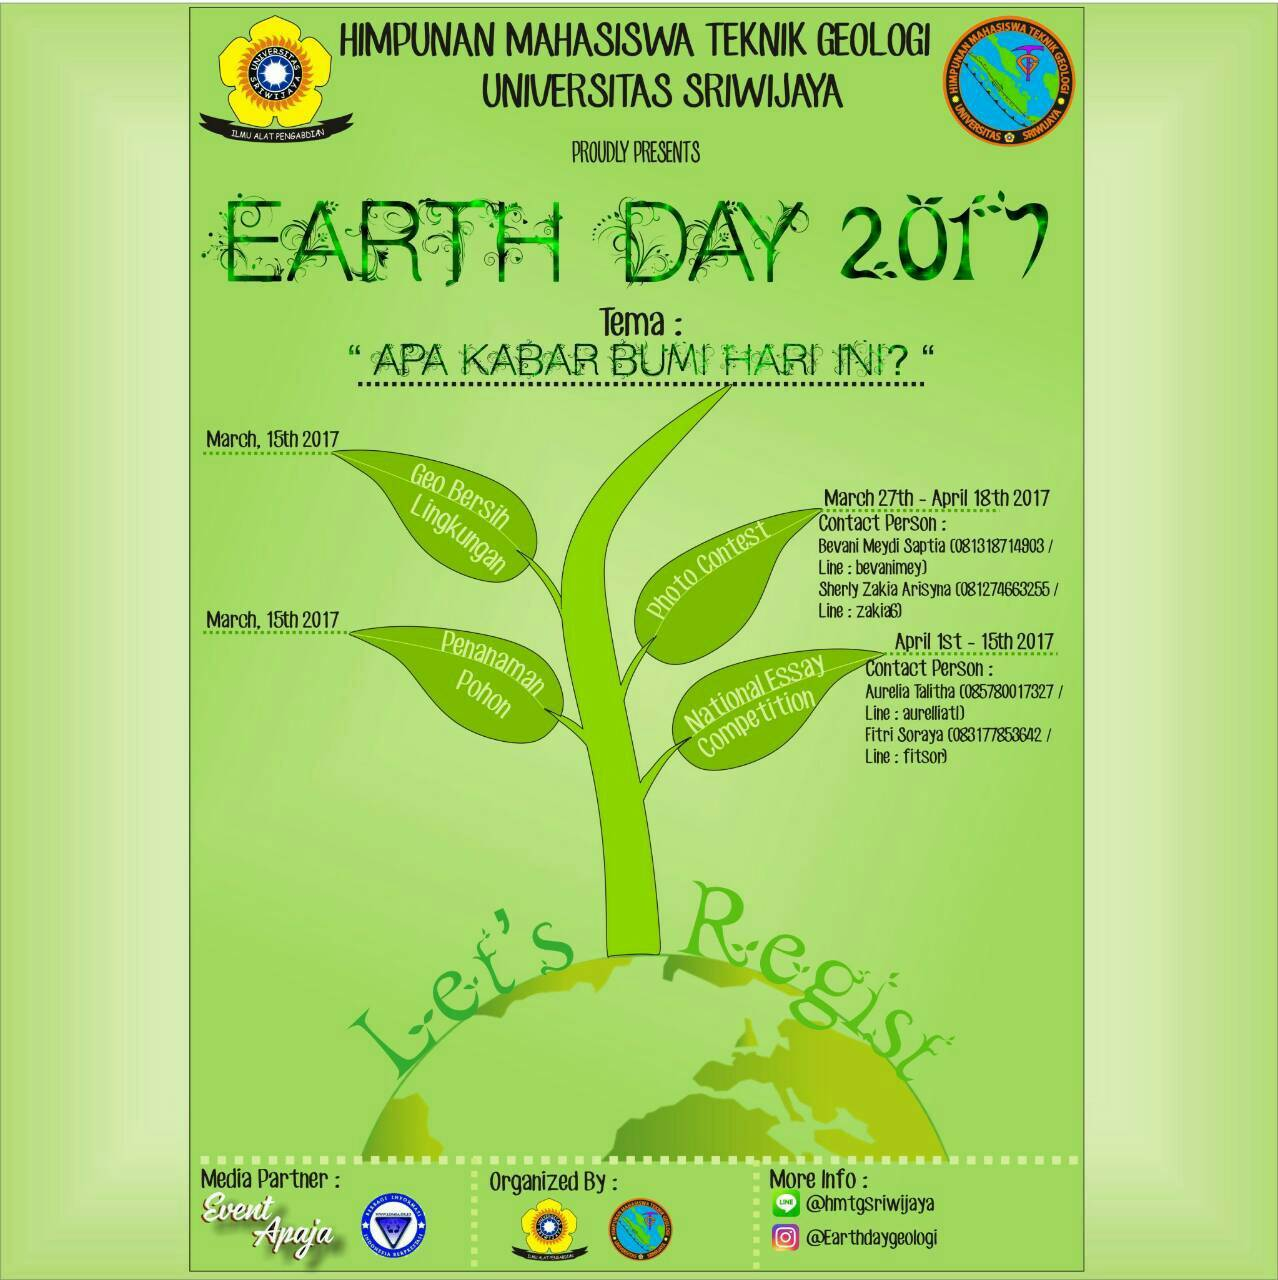 define refutation in an essay Earth Day 2012 Art, Poetry And Essay Contest